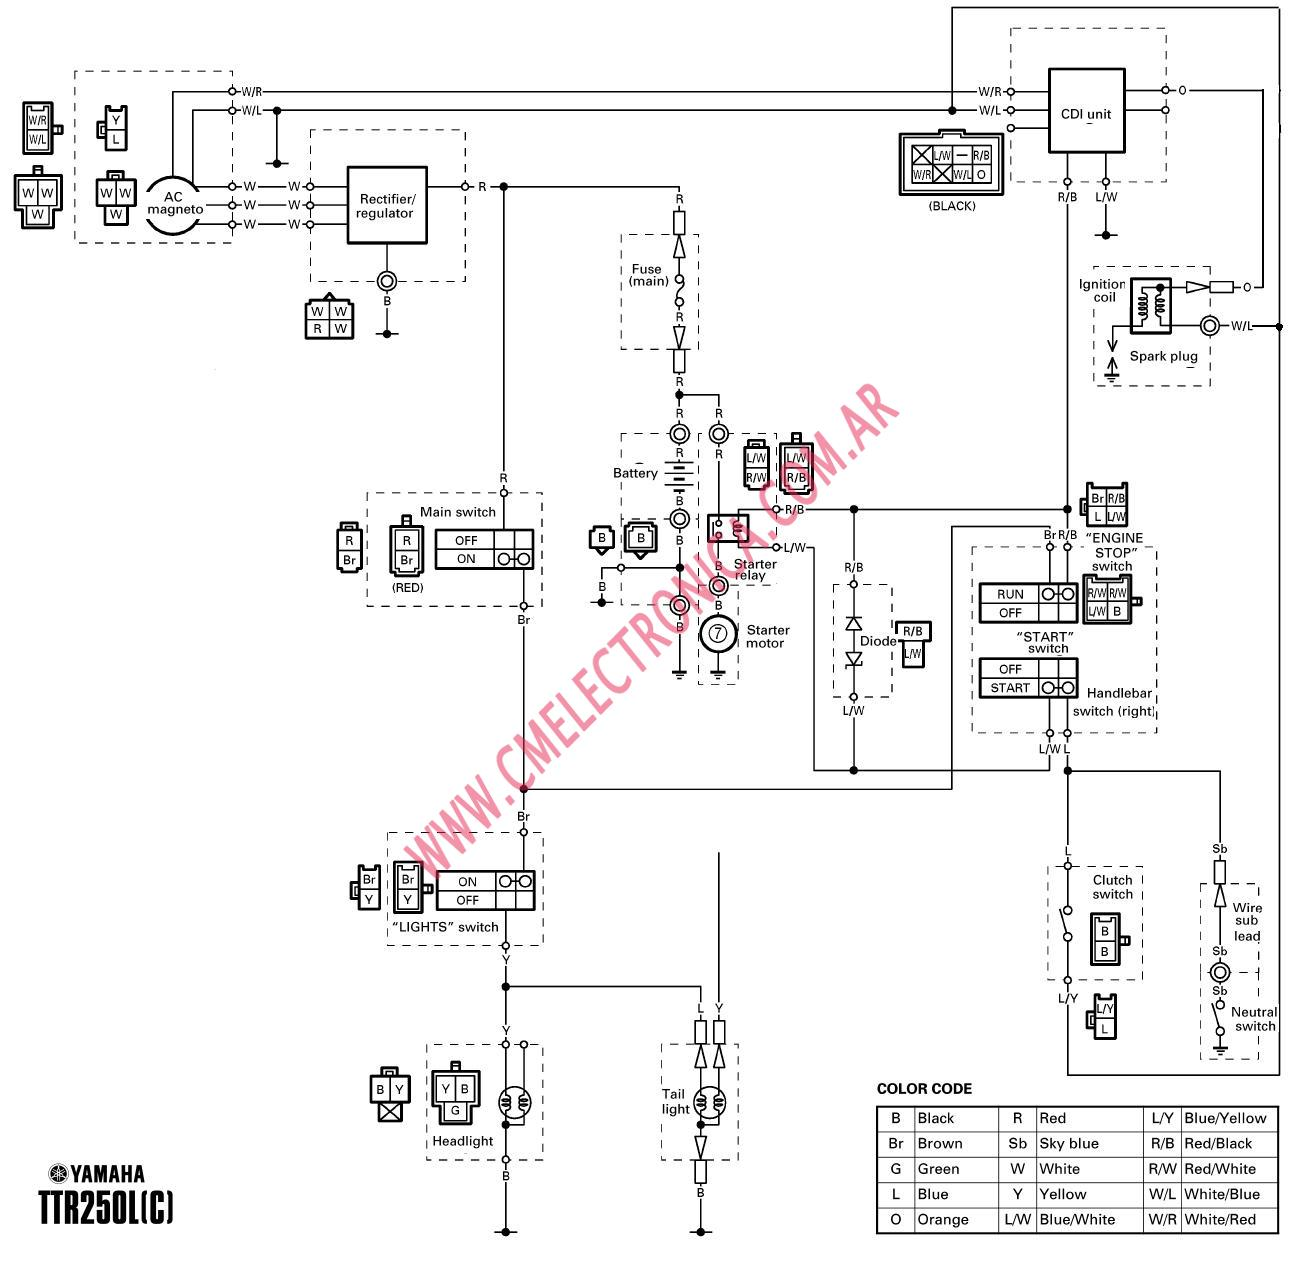 yamaha ttr250 diagrama yamaha ttr250 ttr 250 wiring diagram at gsmx.co